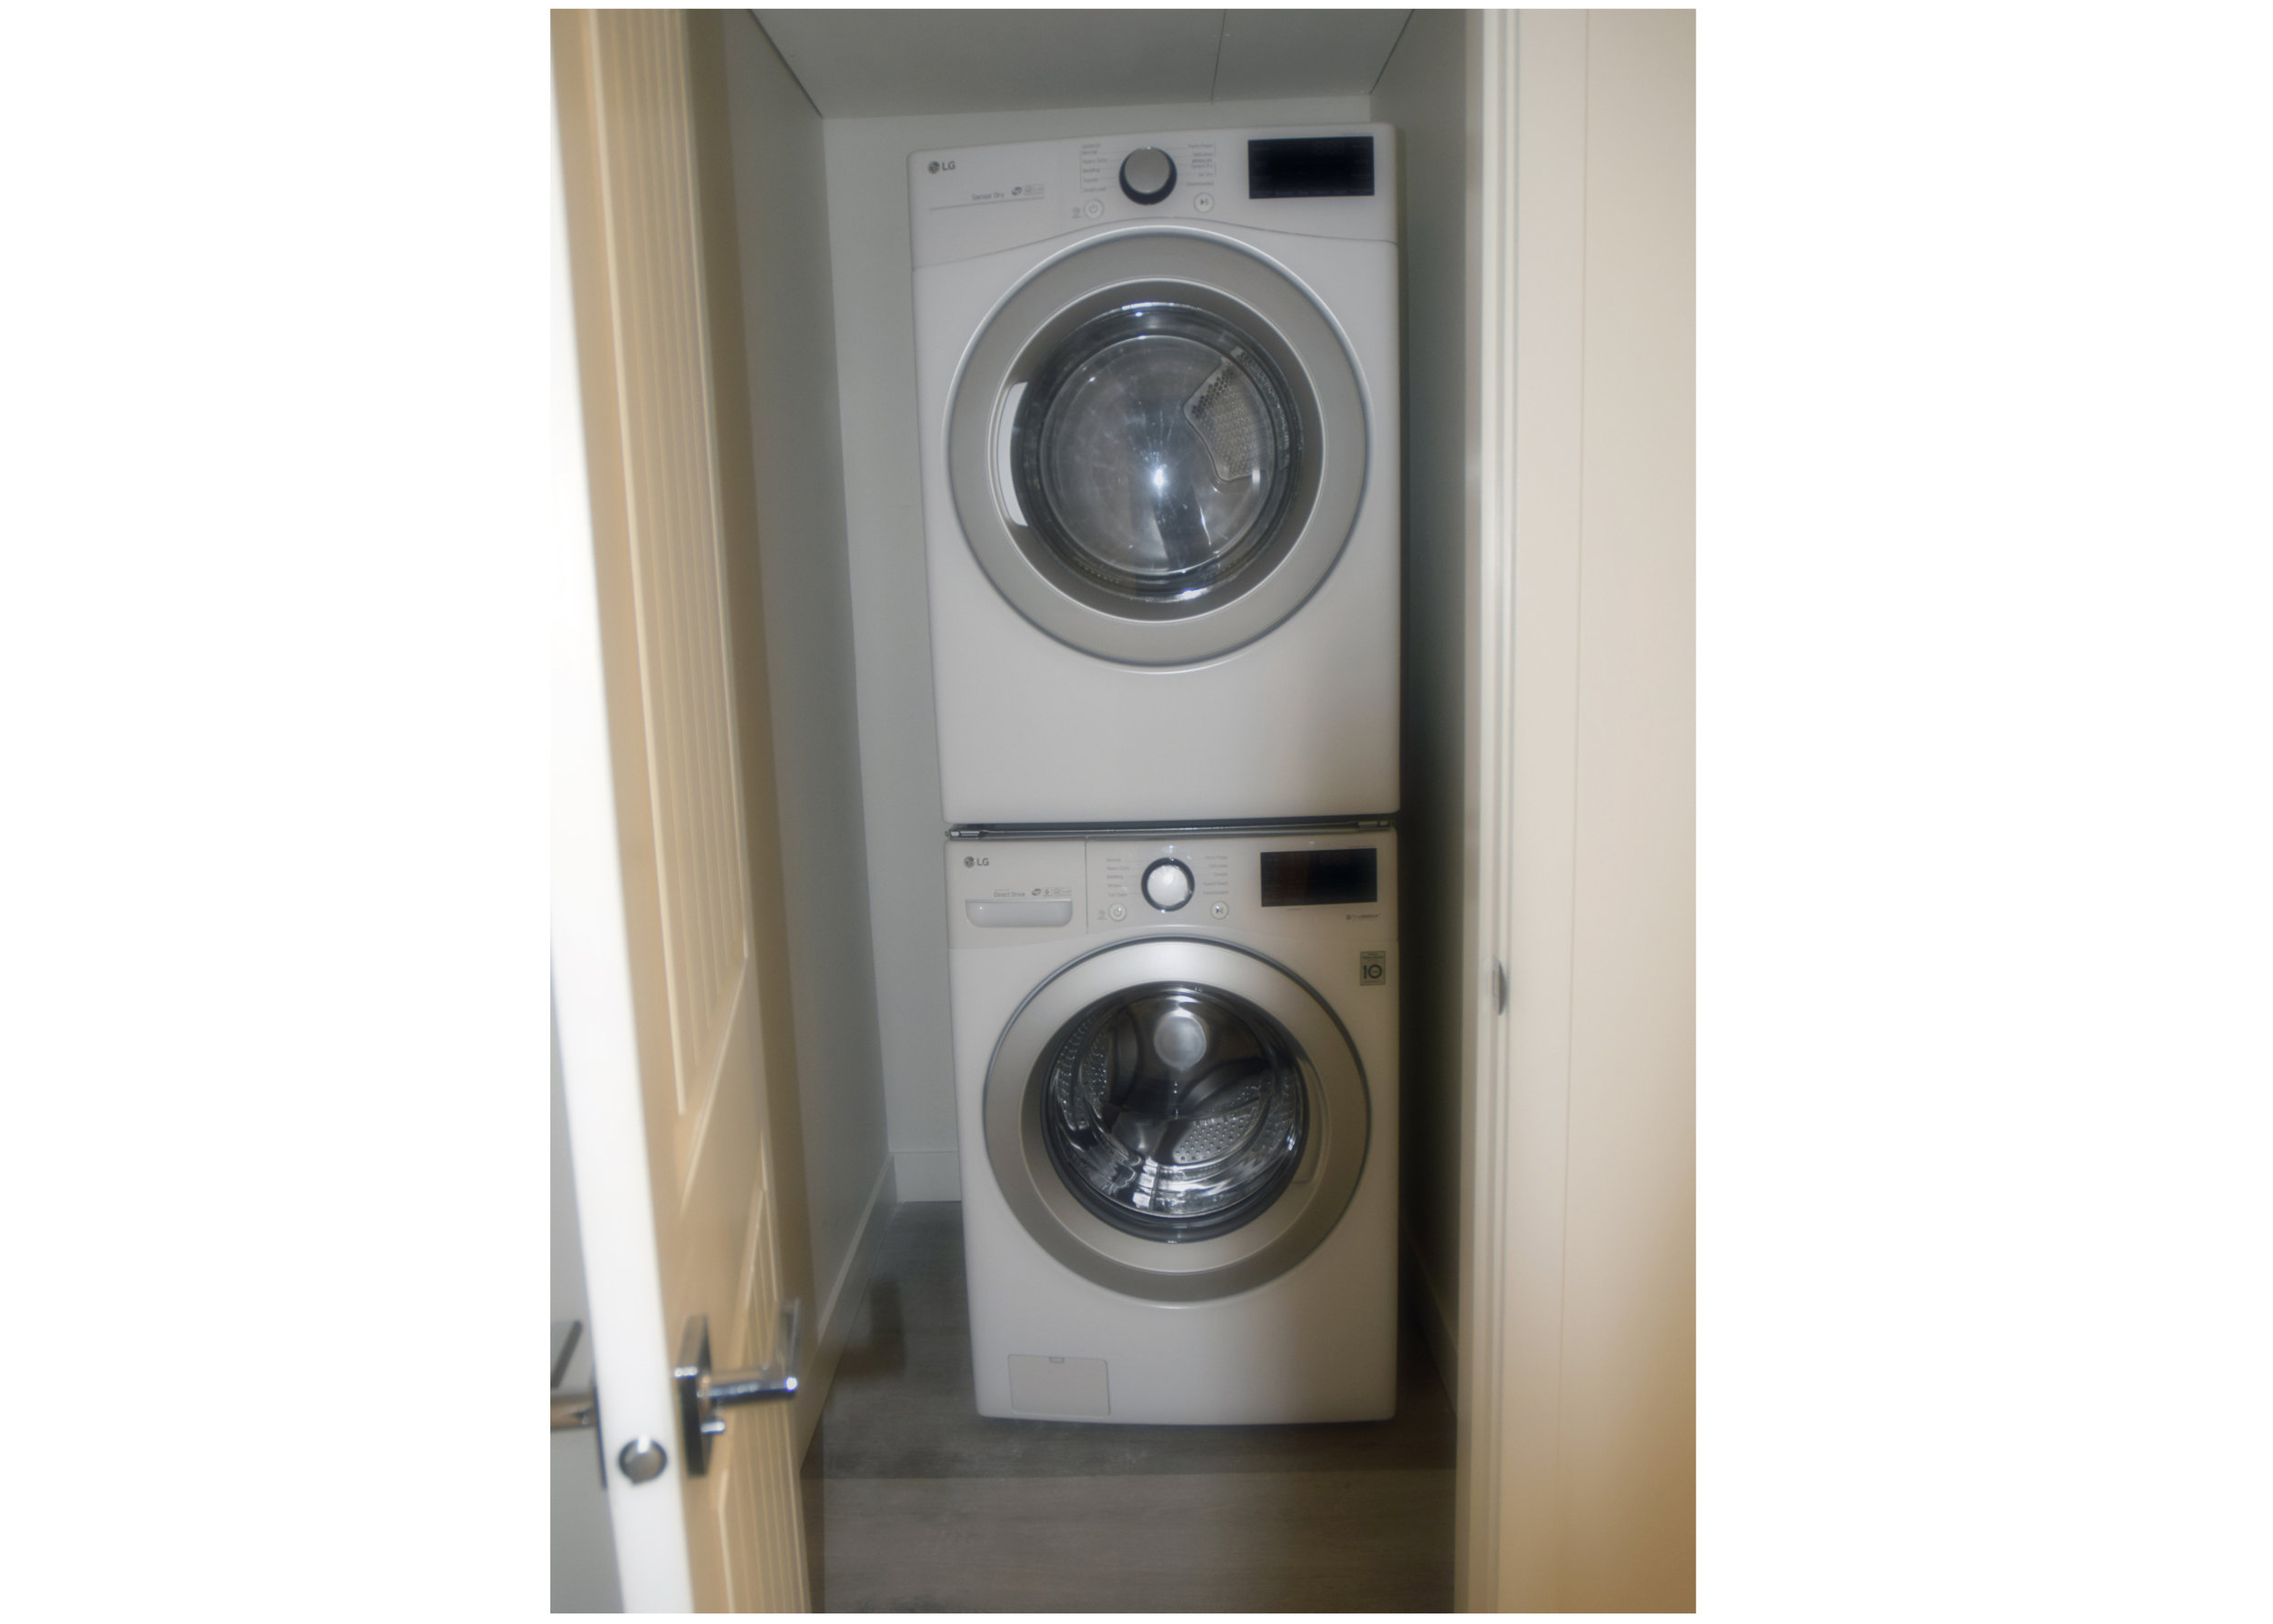 Calgary washer dryer a.jpg